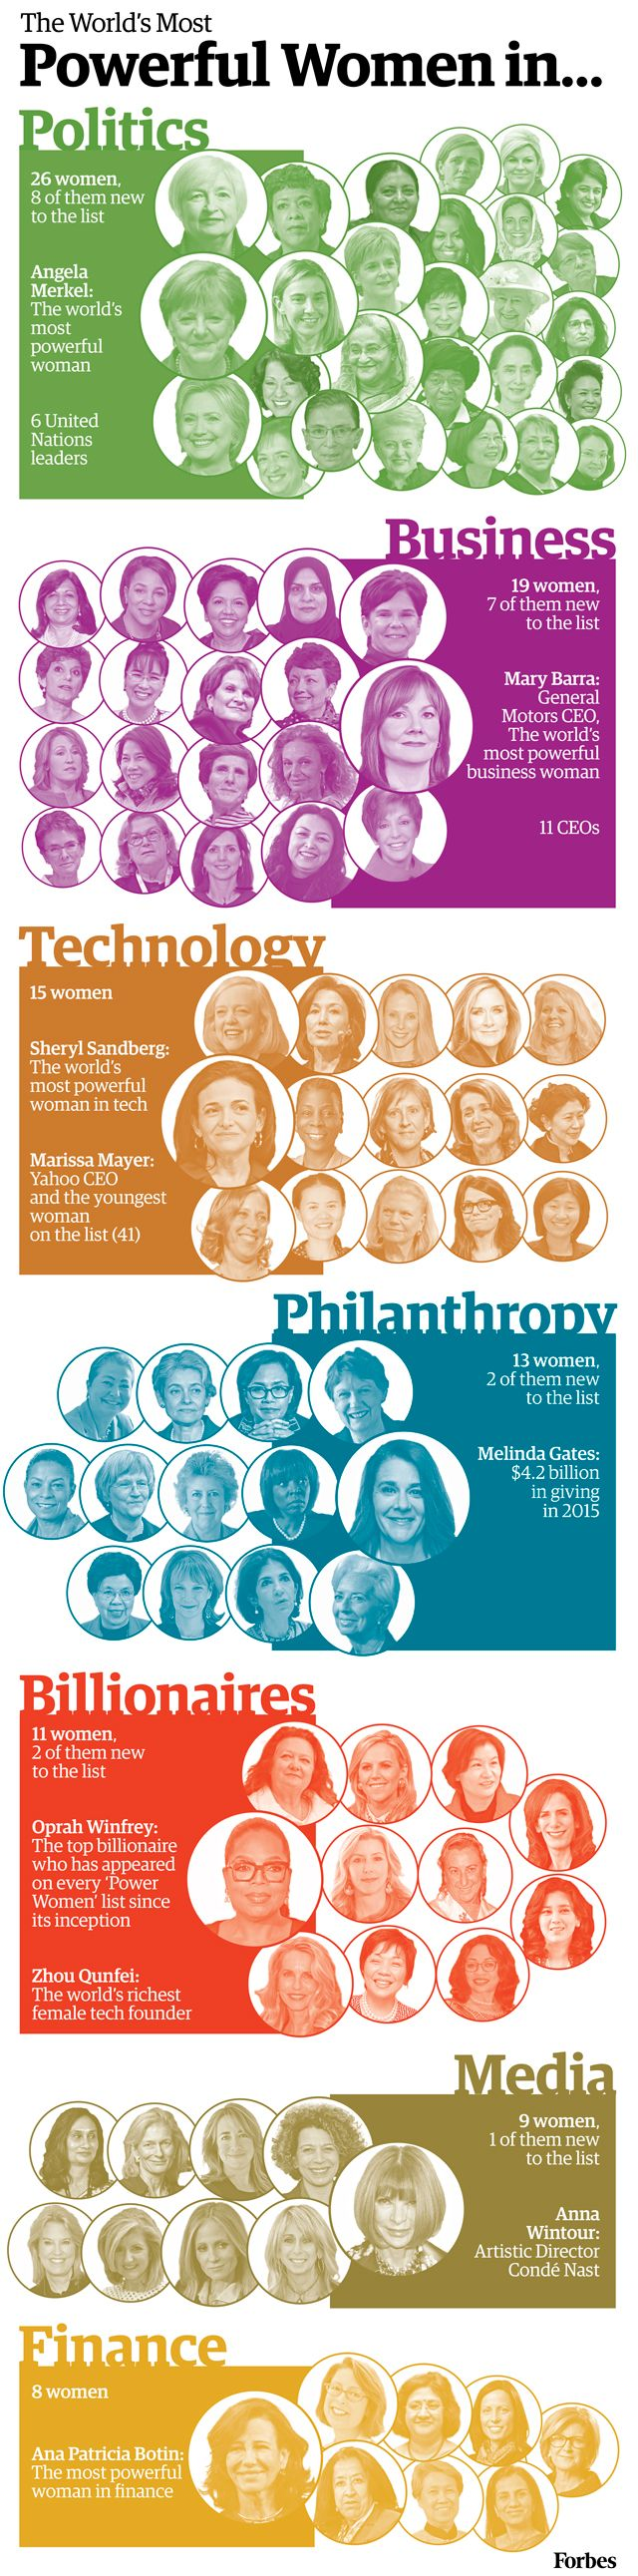 These are the 100 most powerful women in the world, organized by category. So inspiring!